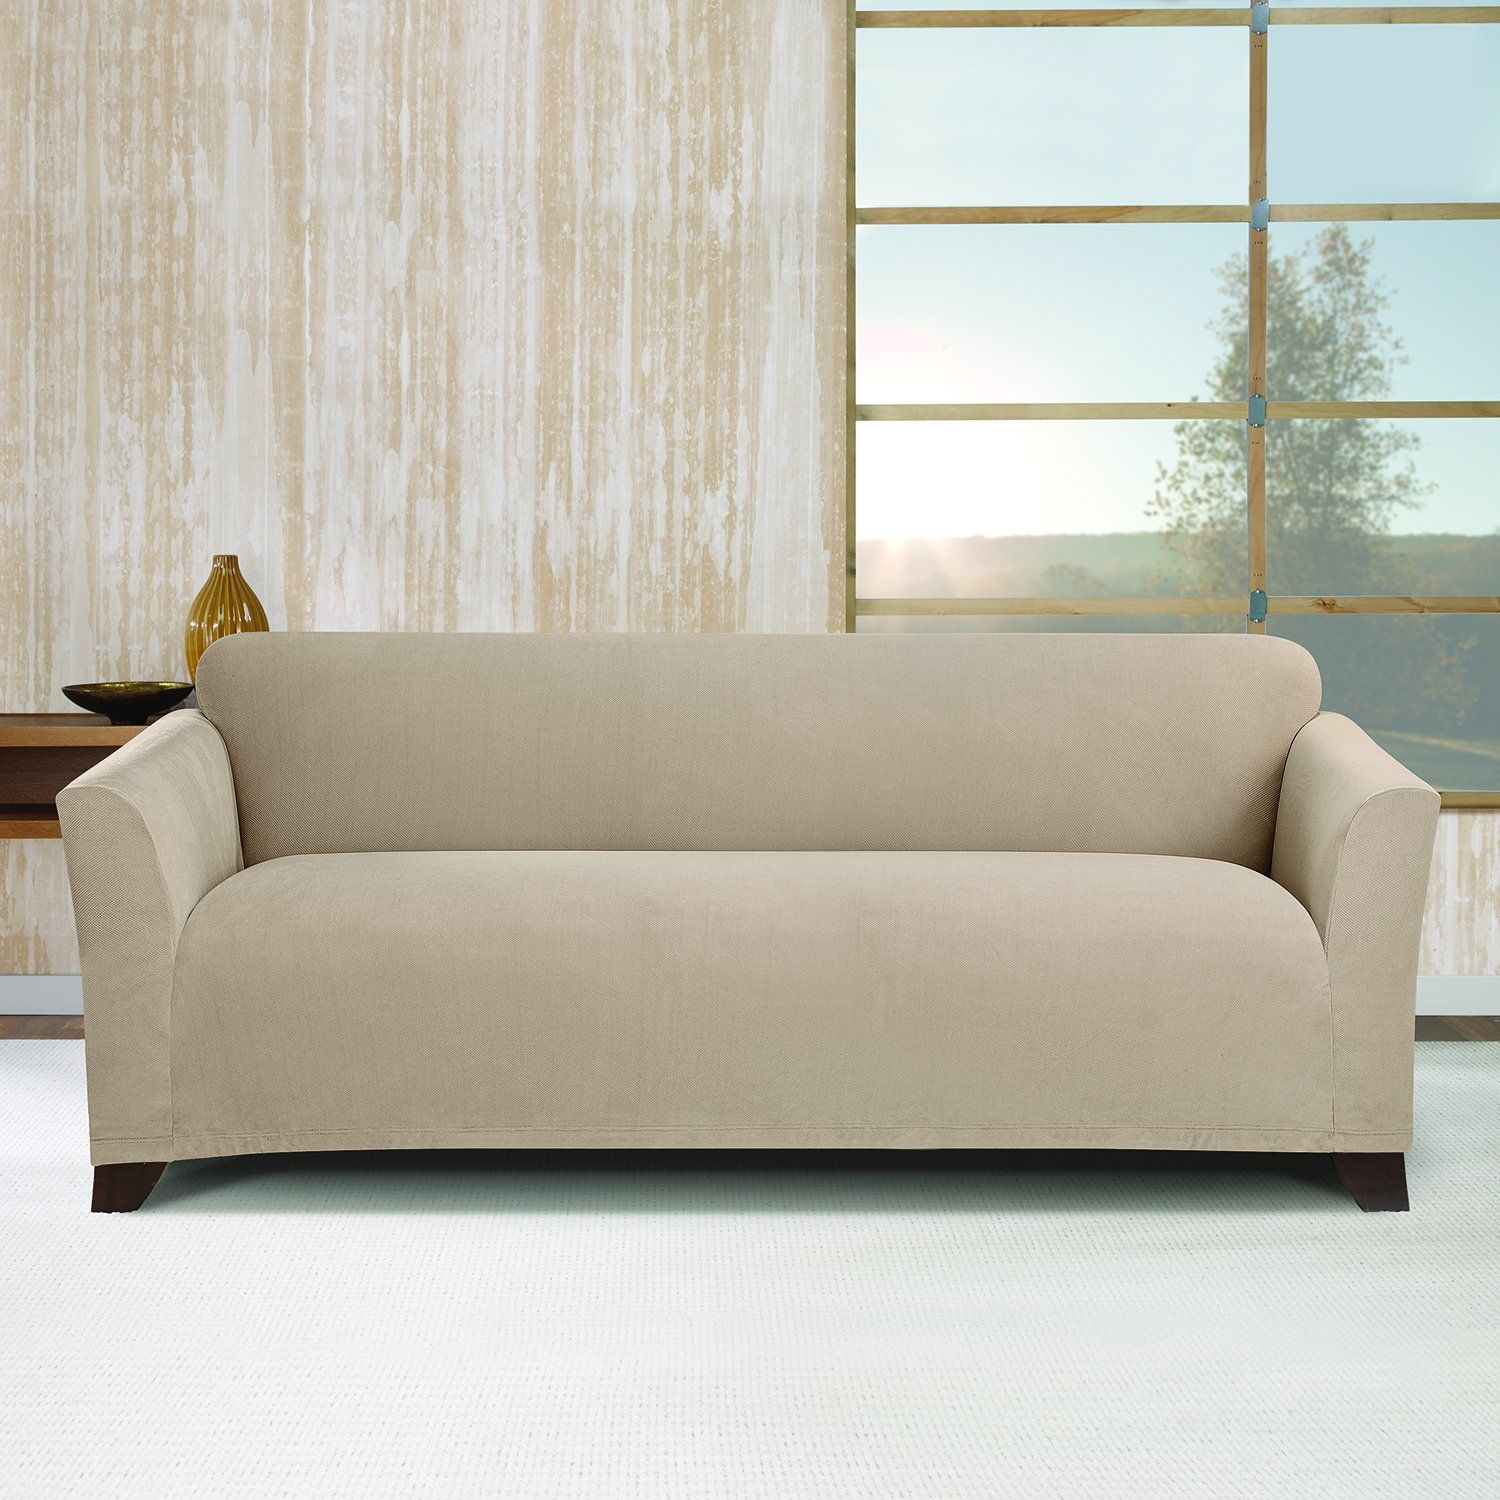 Stretch Morgan 1 Piece Sofa Furniture Cover Blue Slipcovers Sure Fit 1piece Slipcover Khaki Sf45374 You Can Get More Details By Clicking On The Image Affiliate Link